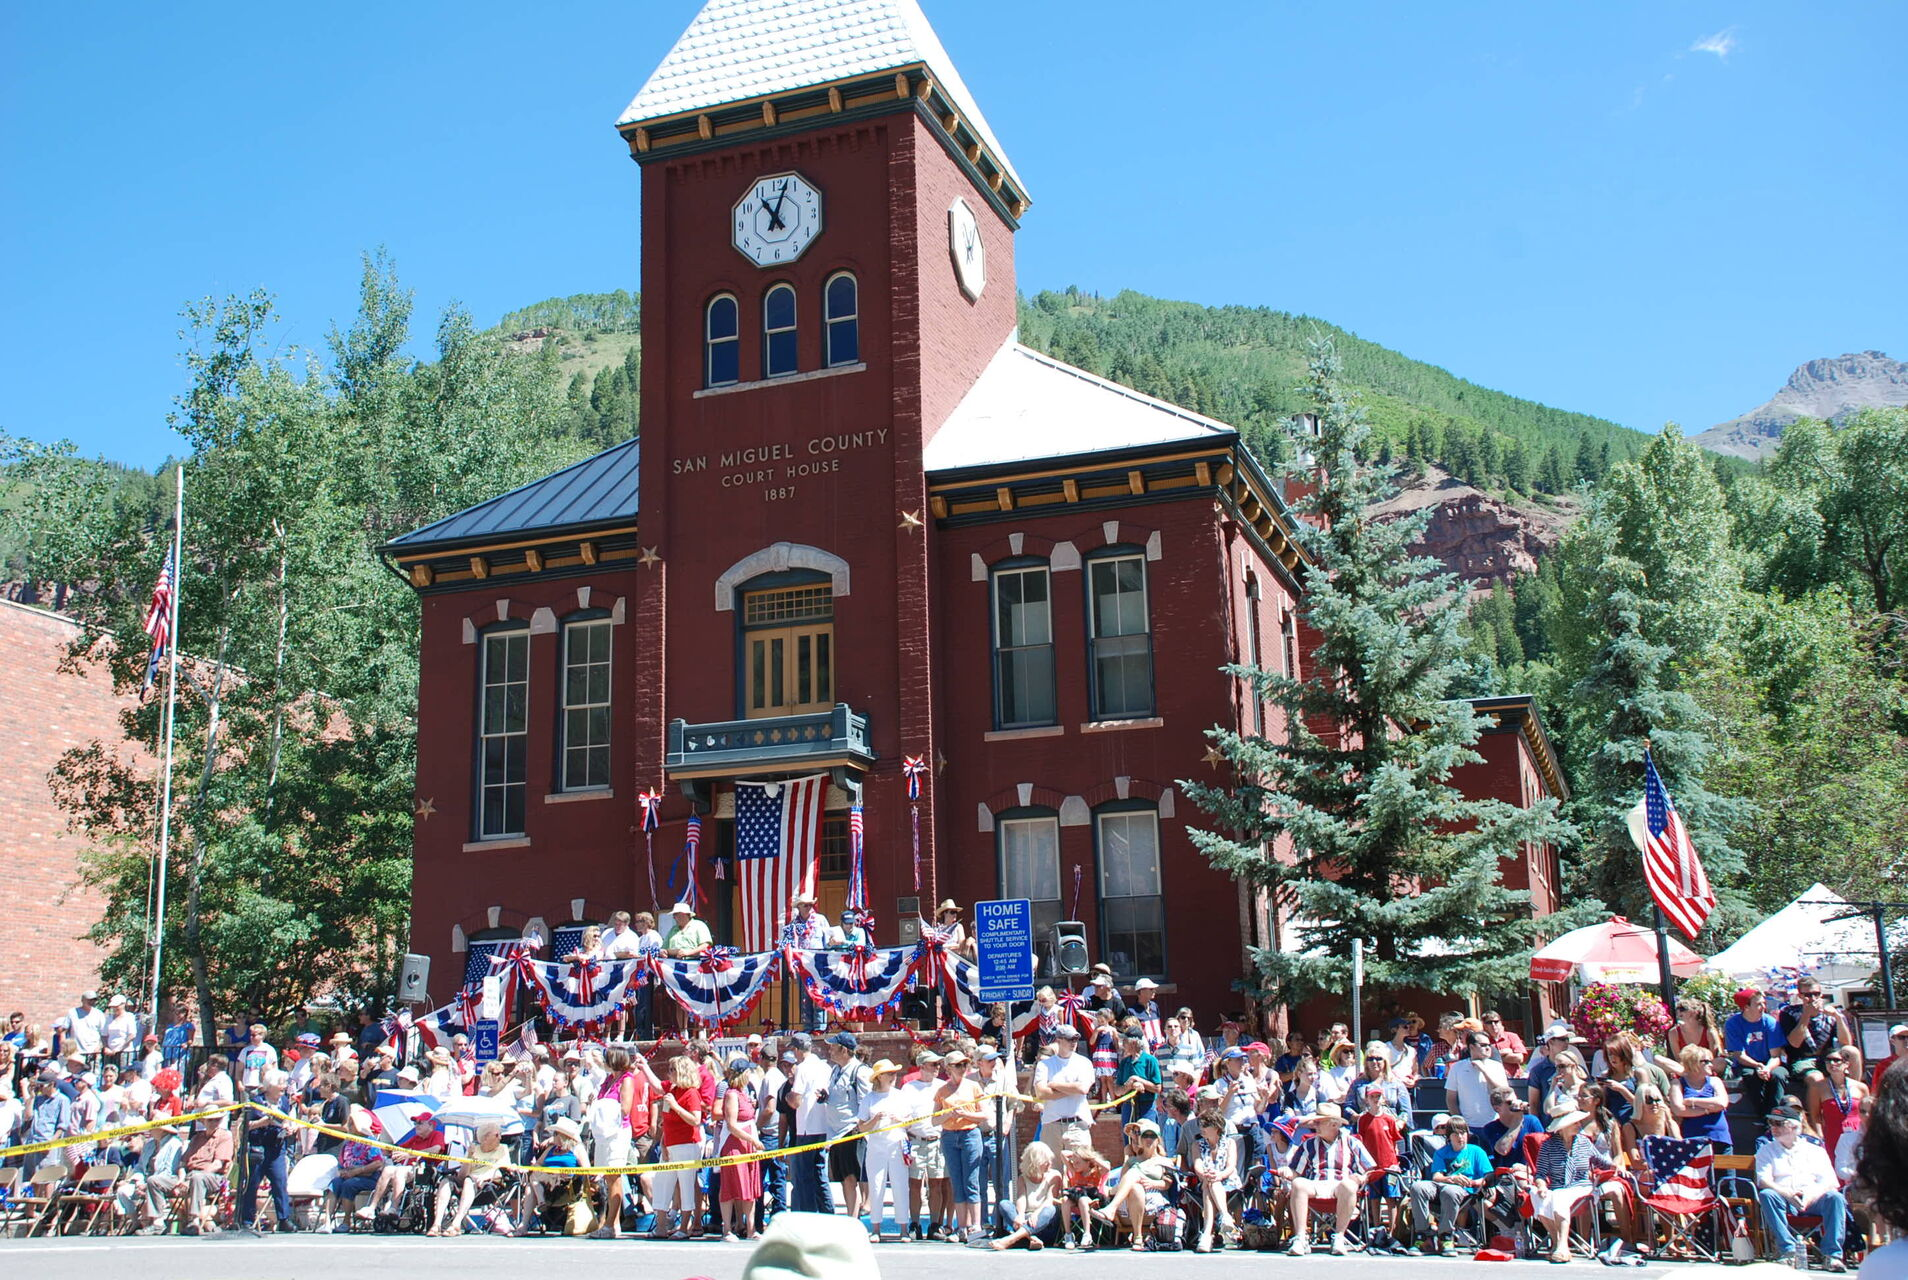 4th of July Parade and the historic County Courthouse